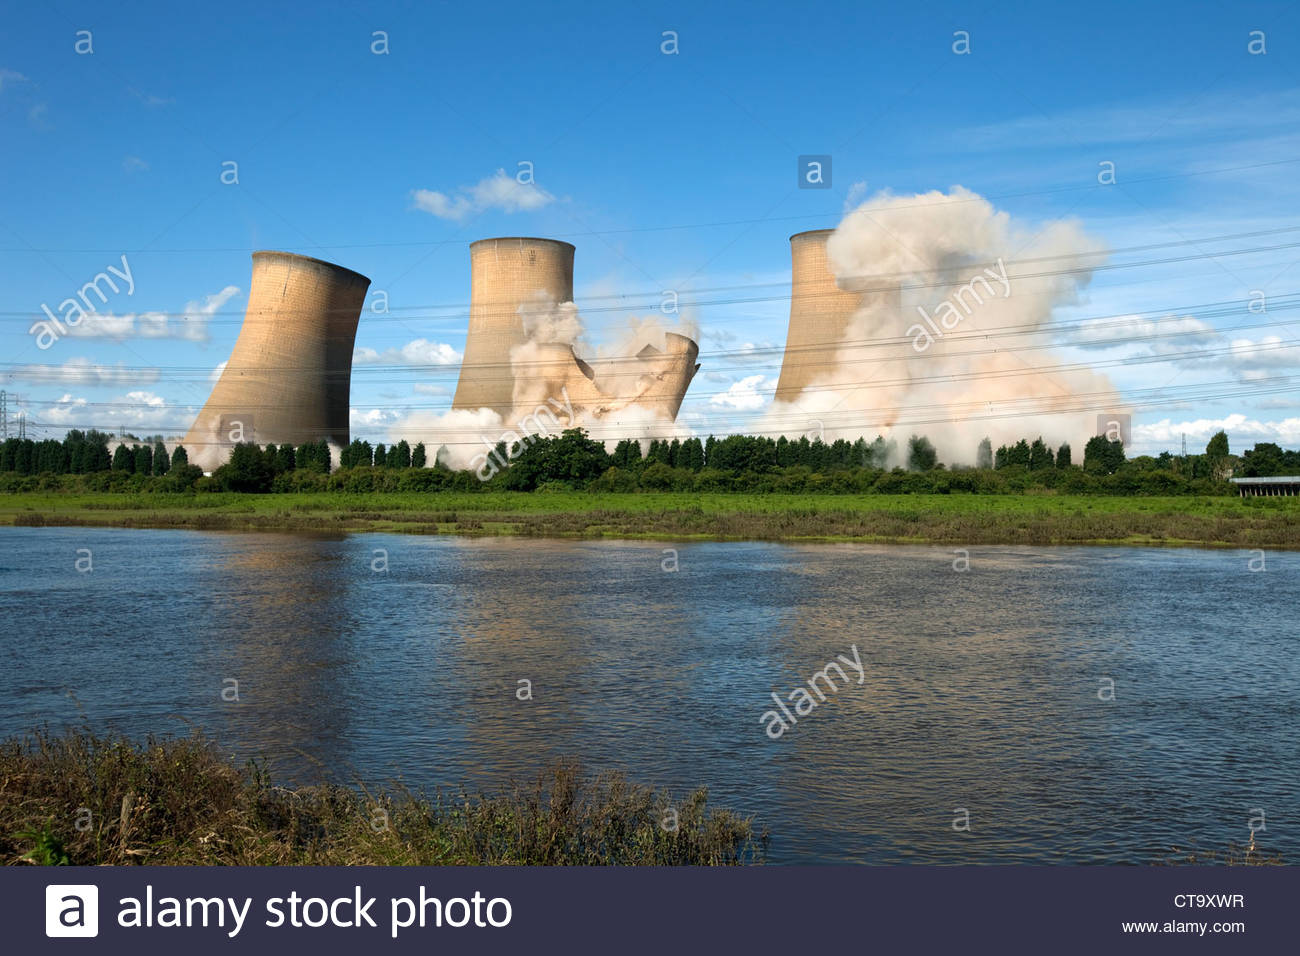 Cooling Tower Demolition : The demolition of high marnham coal fired power station